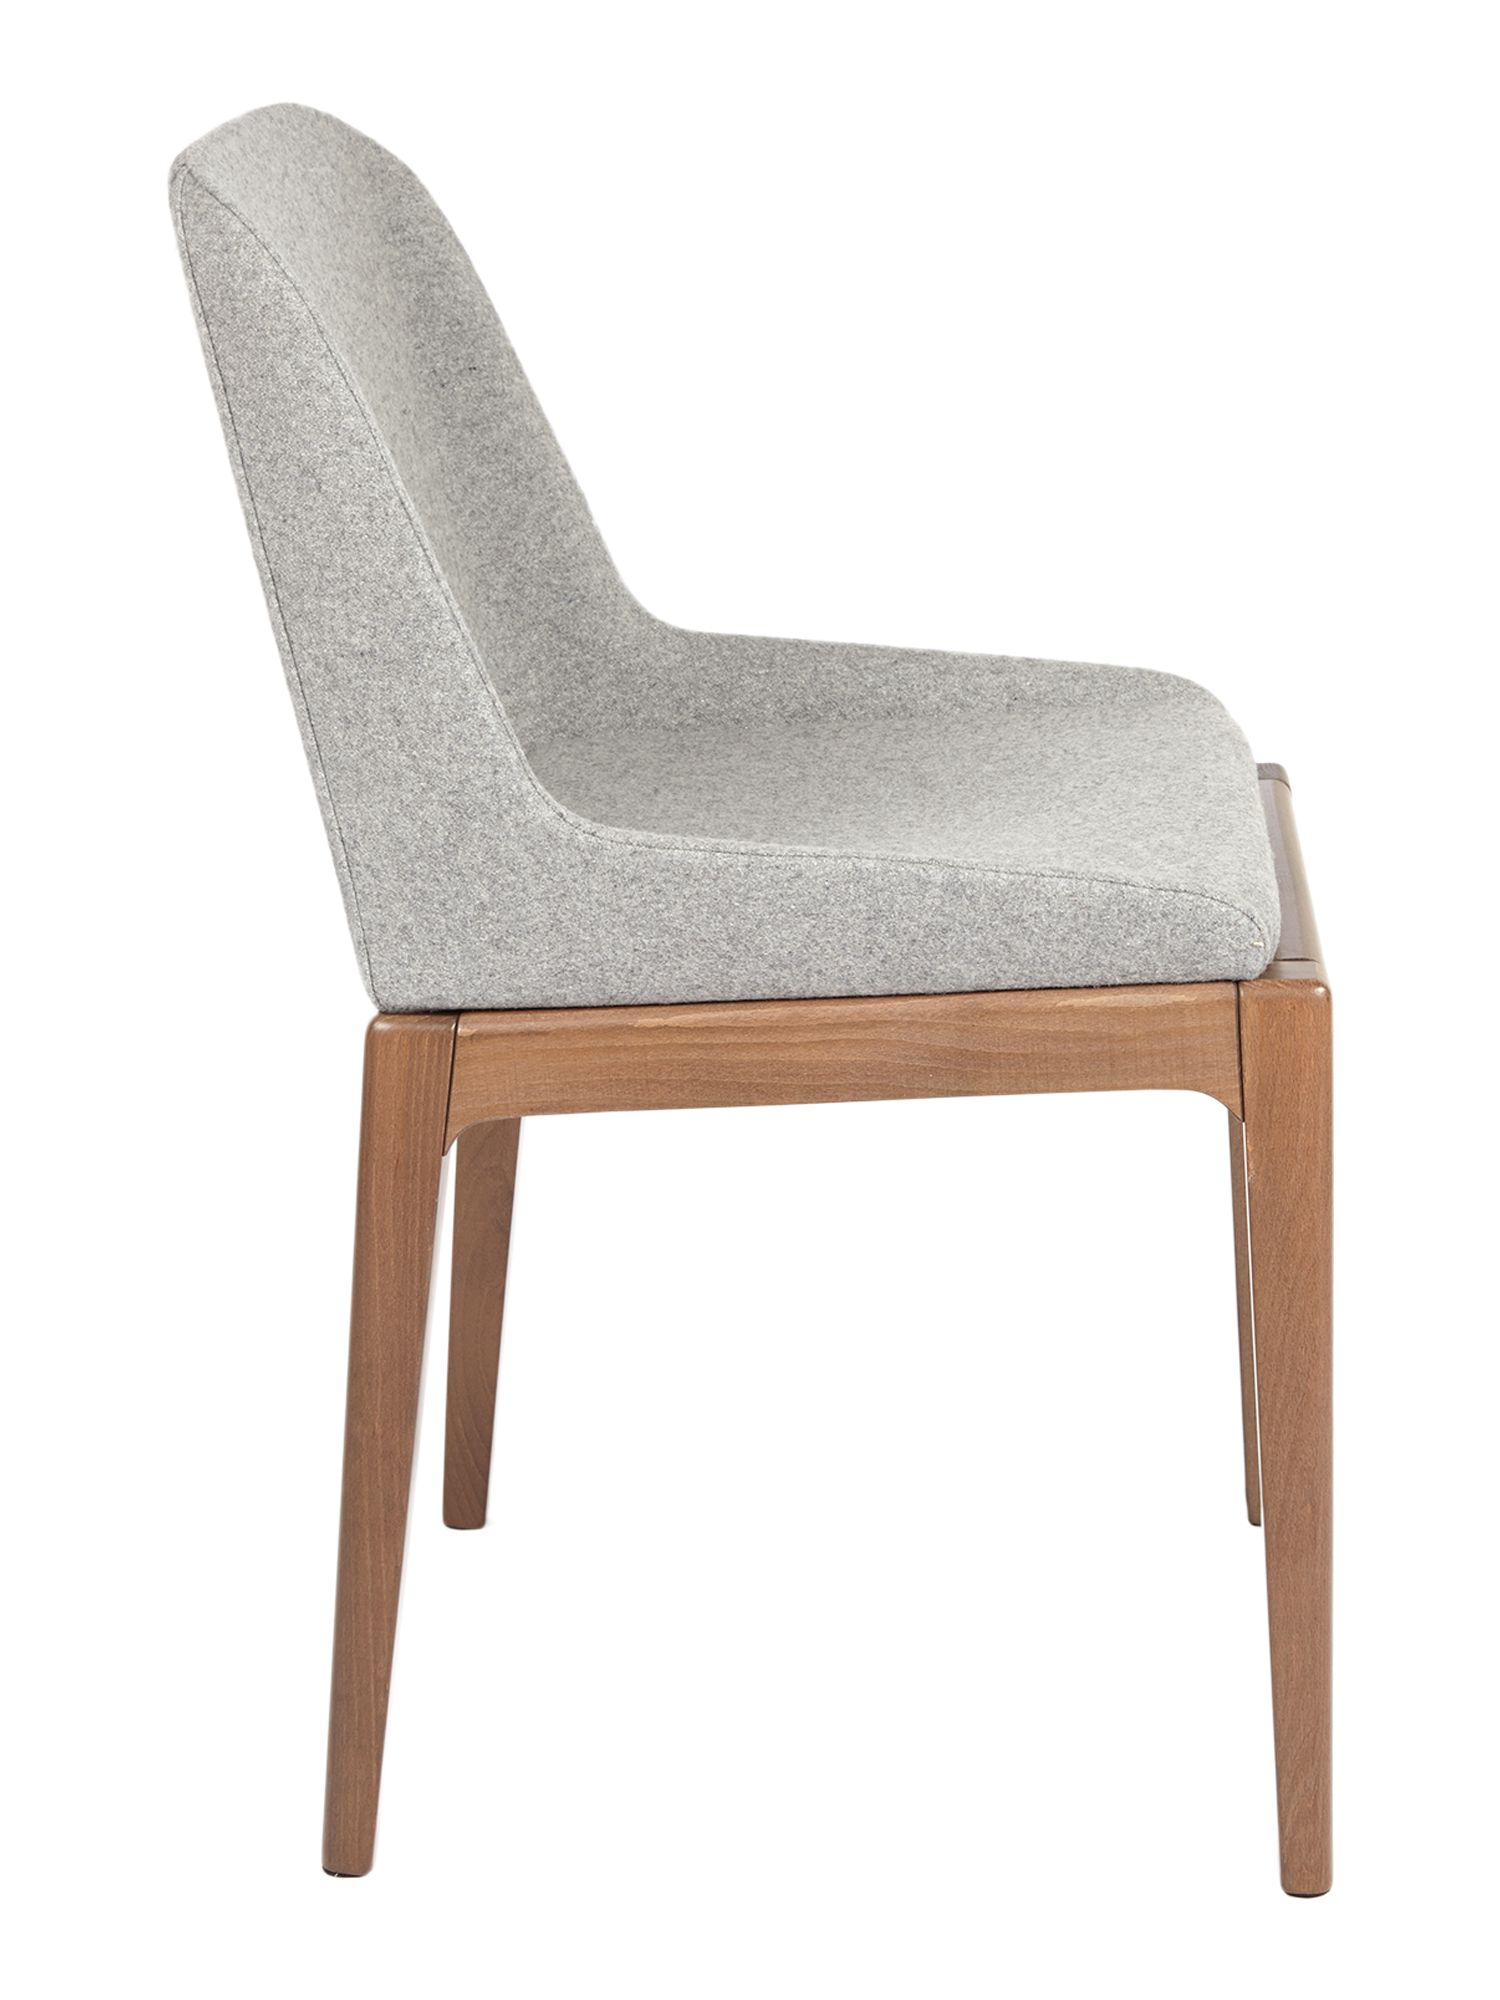 Lazio dining chair pair